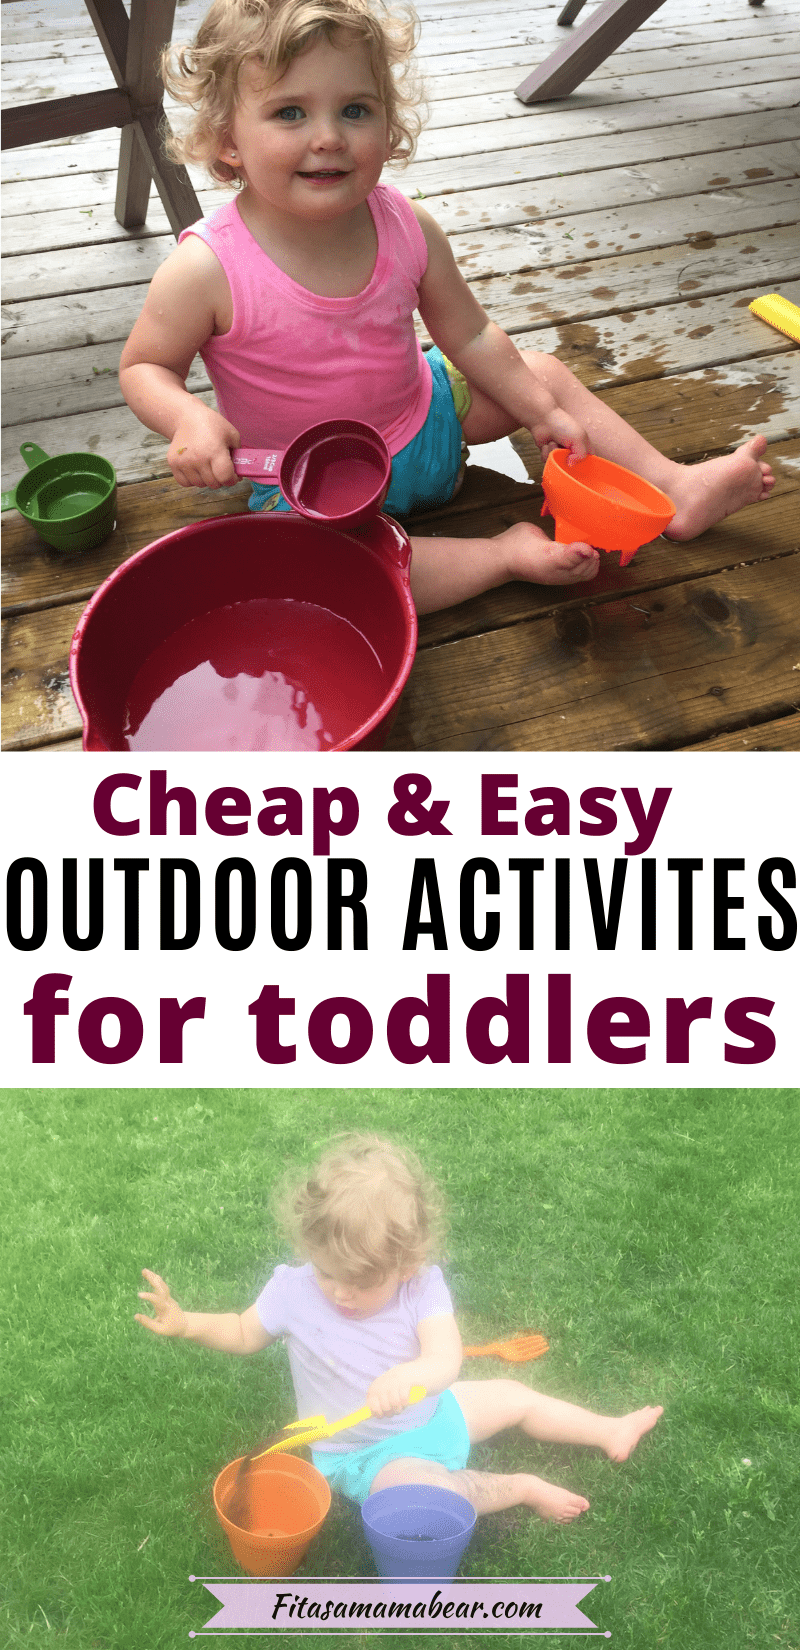 Pinterest image with text: two pictures of a toddler playing outside with summer activities like water and gardening